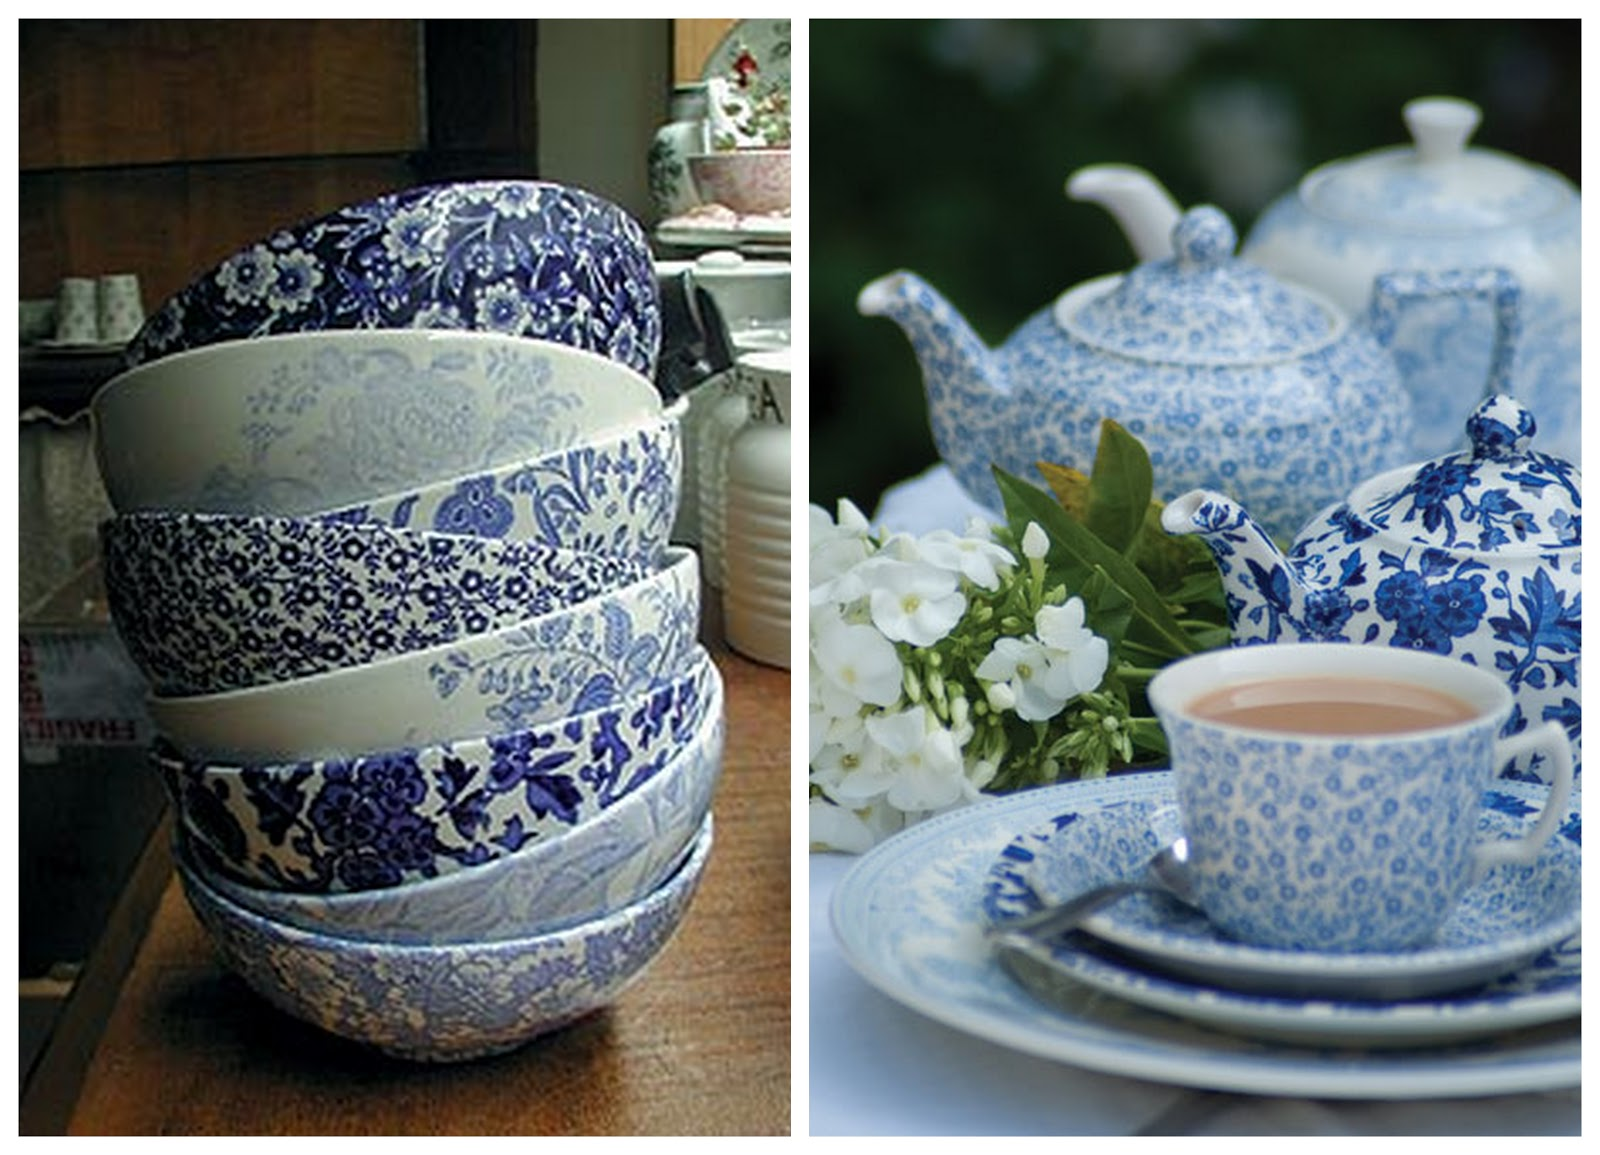 Eaton Square Burleigh Love For China Made In England